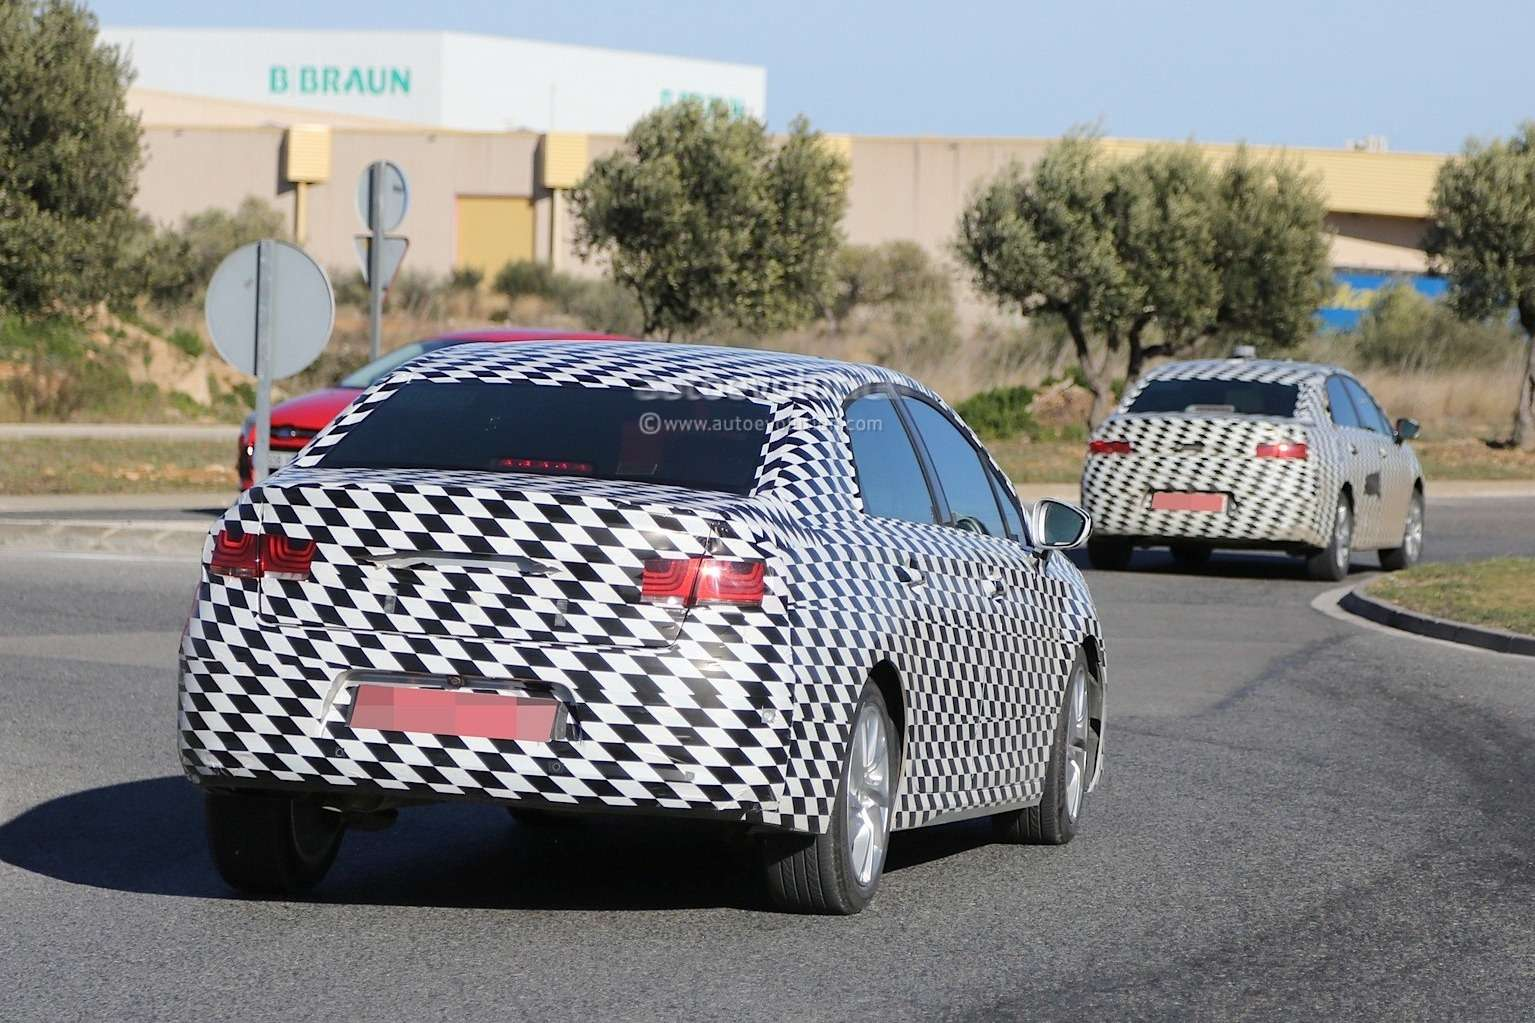 mystery-citroen-compact-sedan-spied-testing-in-spain-could-be-the-new-c4-lunge_10